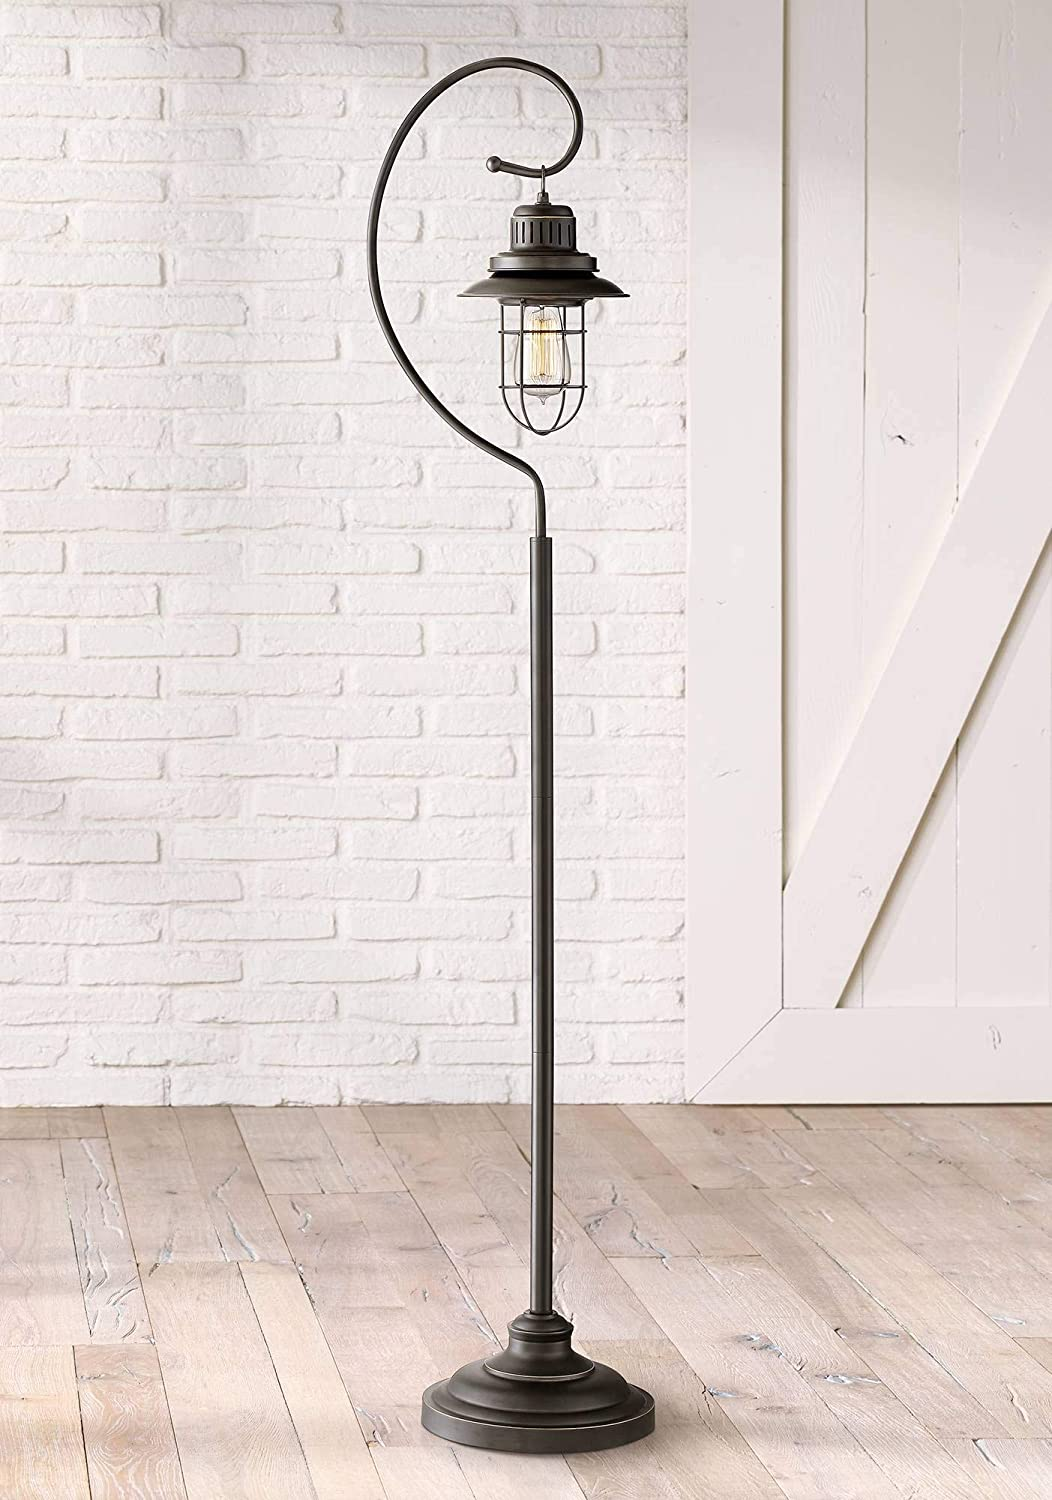 Ulysses Industrial Lantern Floor Lamp Oil Rubbed Bronze Metal Cage Dimmable LED Edison Bulb for Living Room Reading – Franklin Iron Works